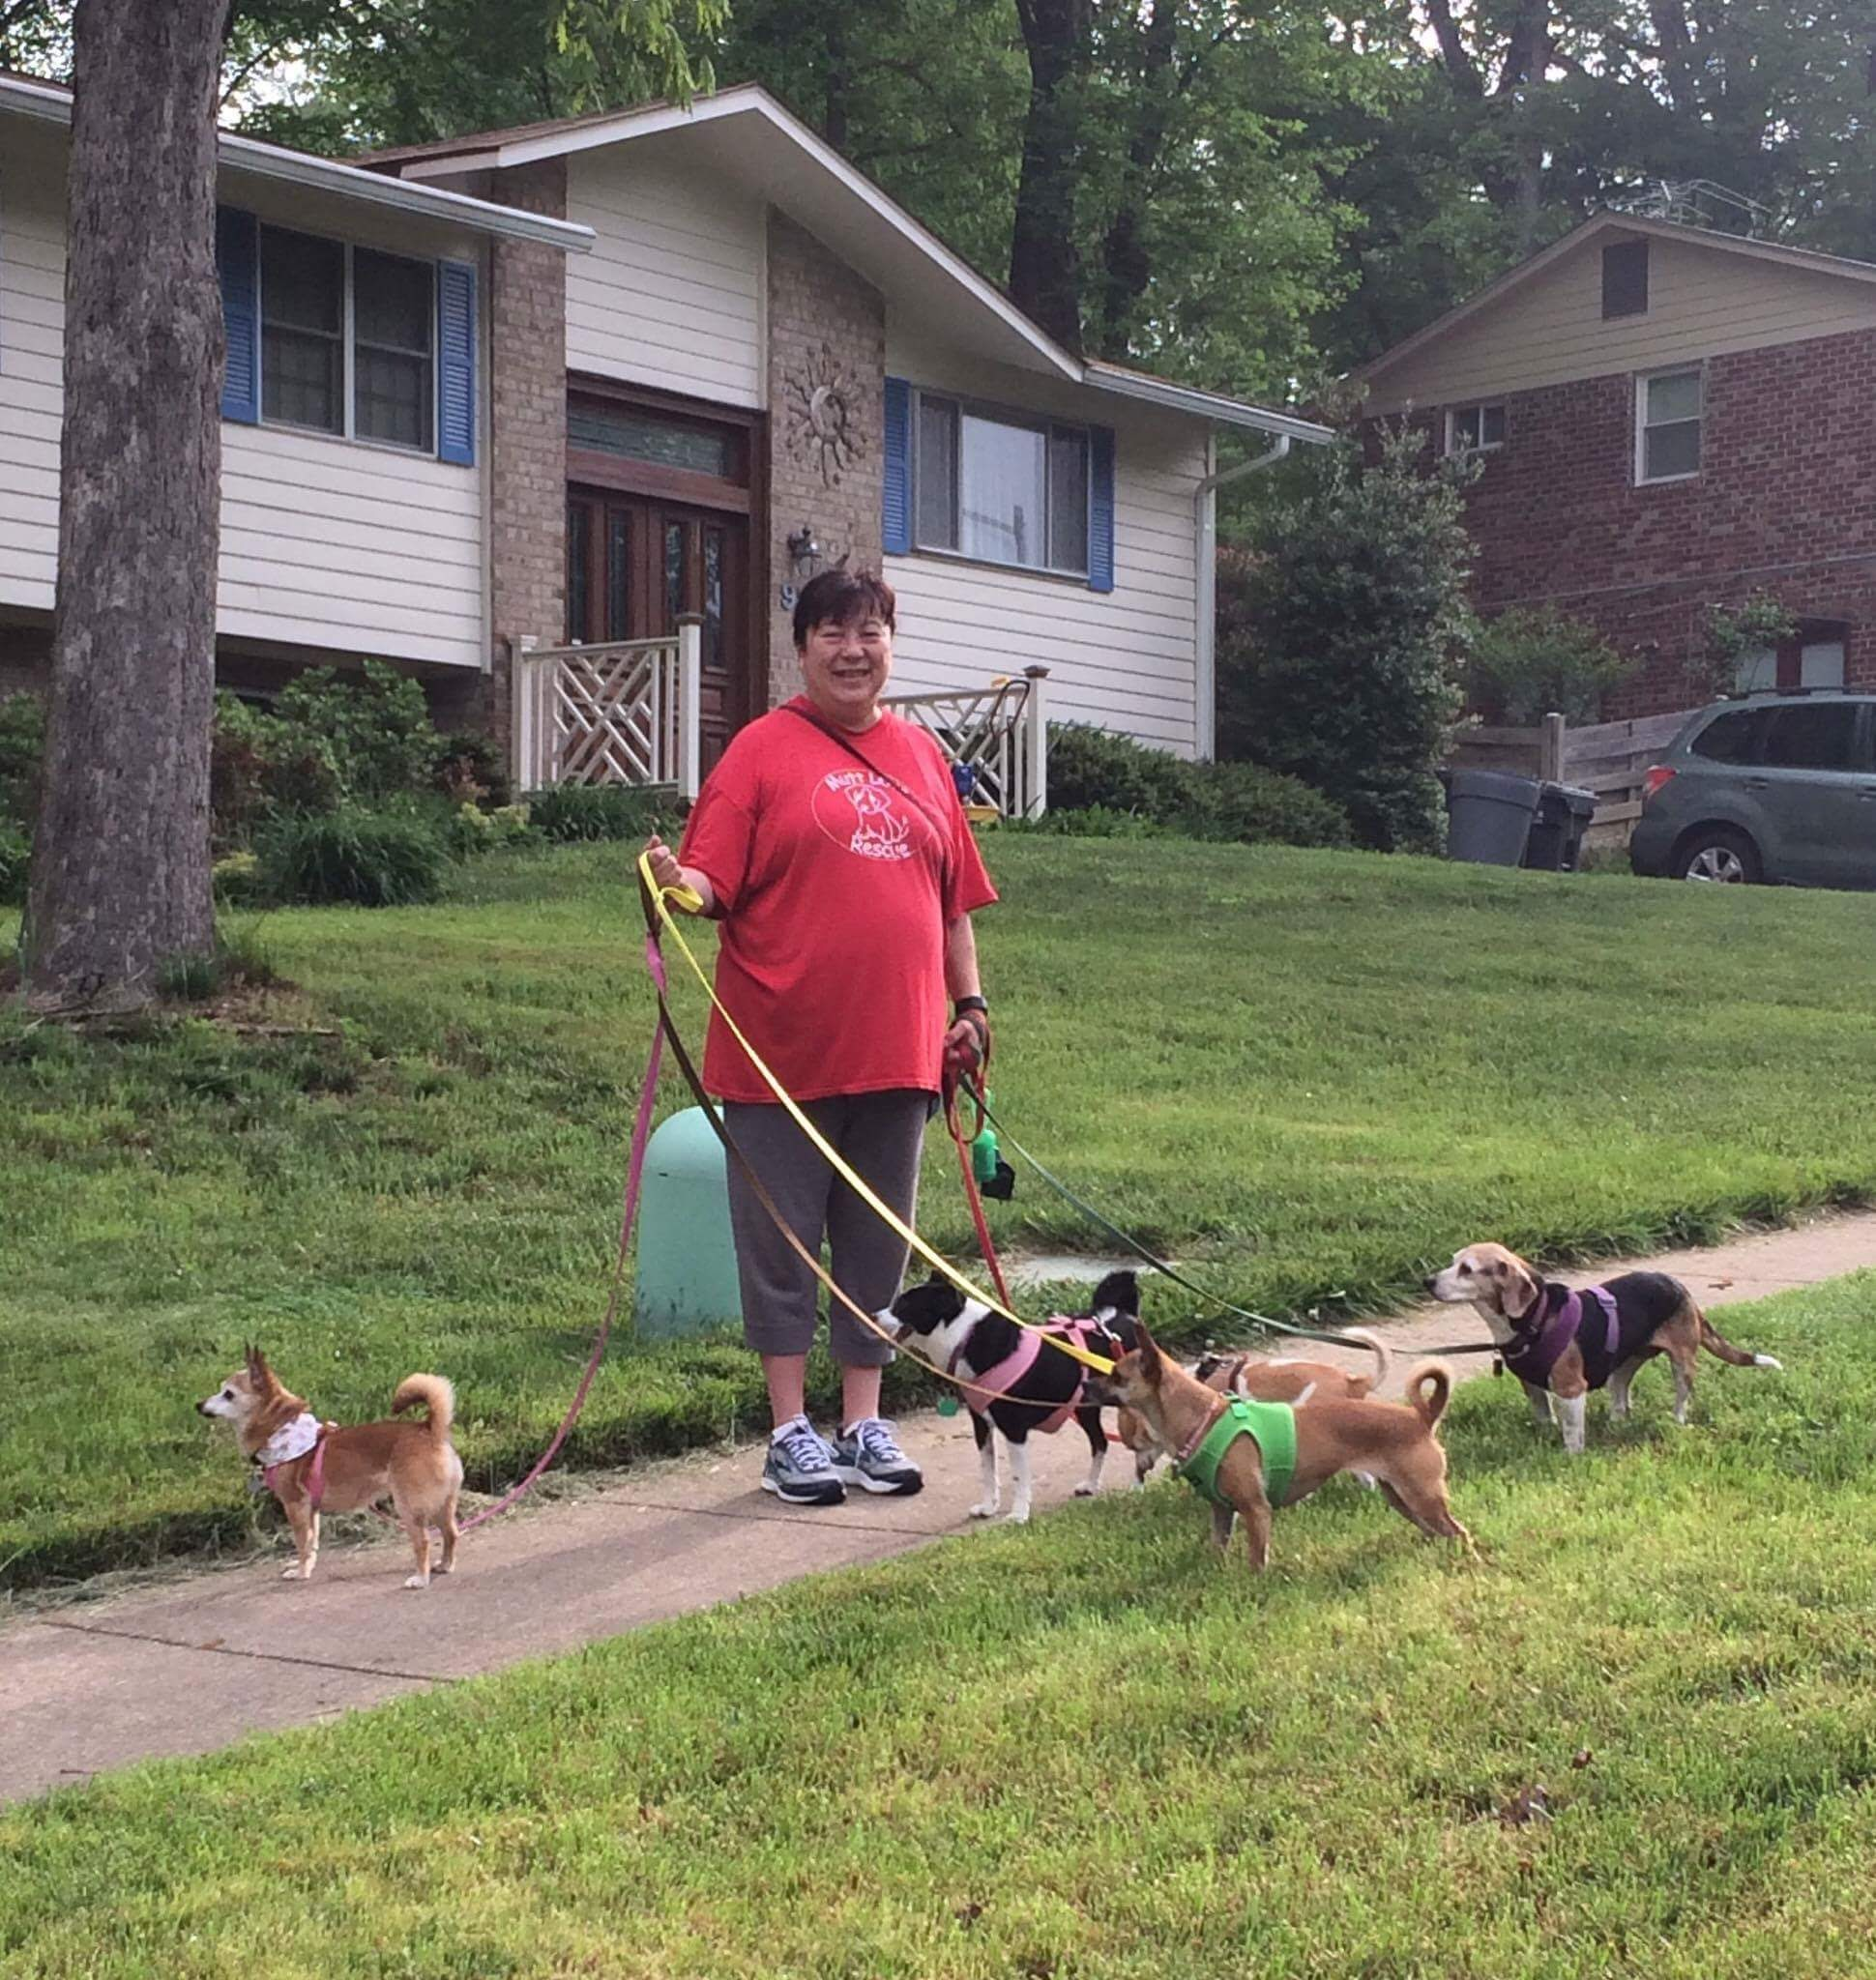 Cathy with some of her doggy pals before her physique work began.